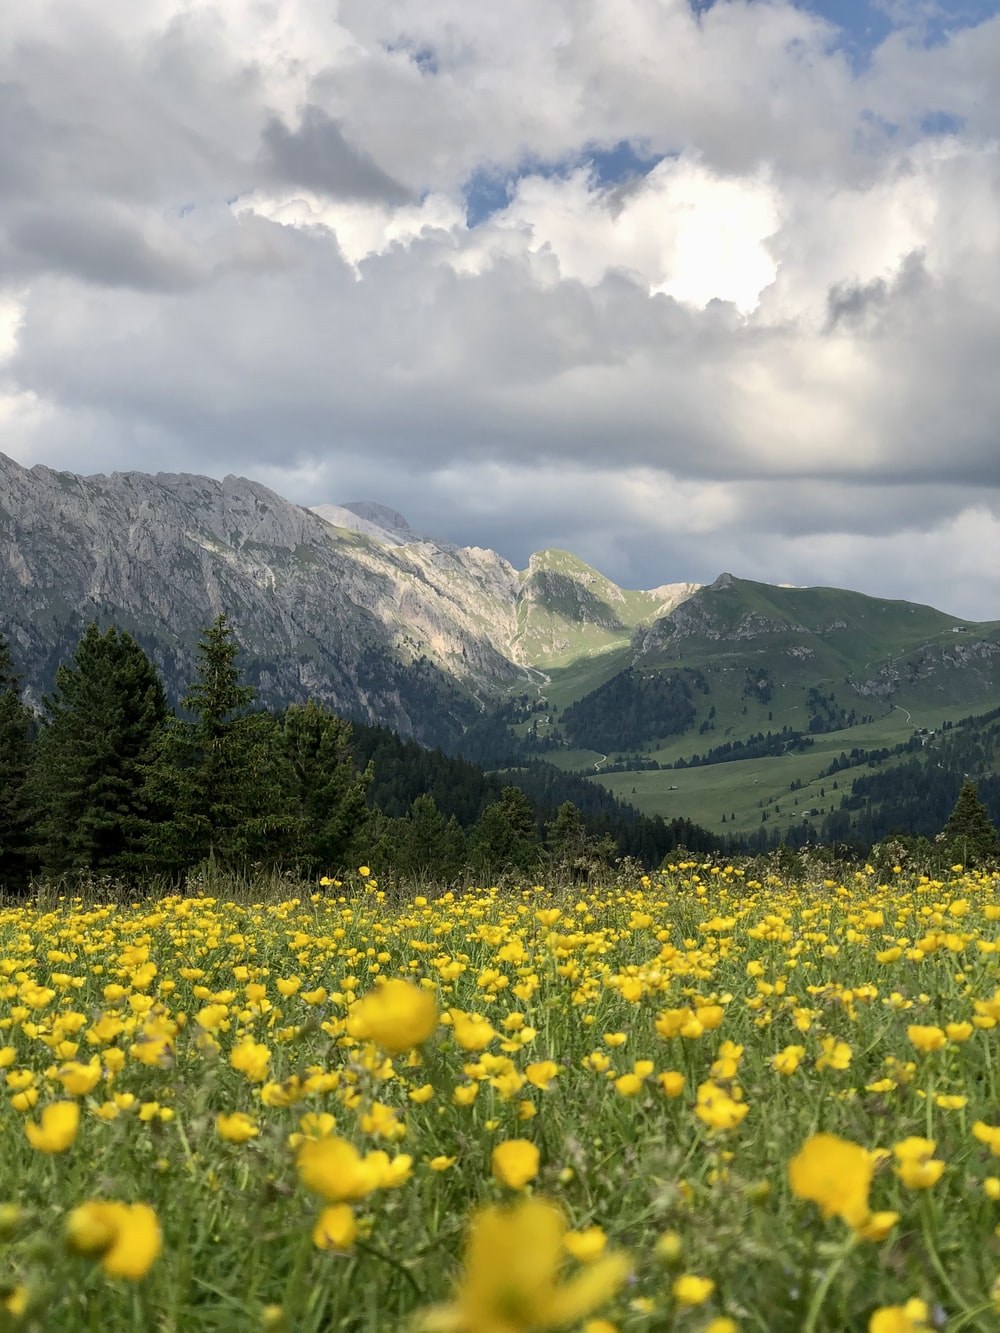 yellow flower field near green mountains under white clouds during daytime